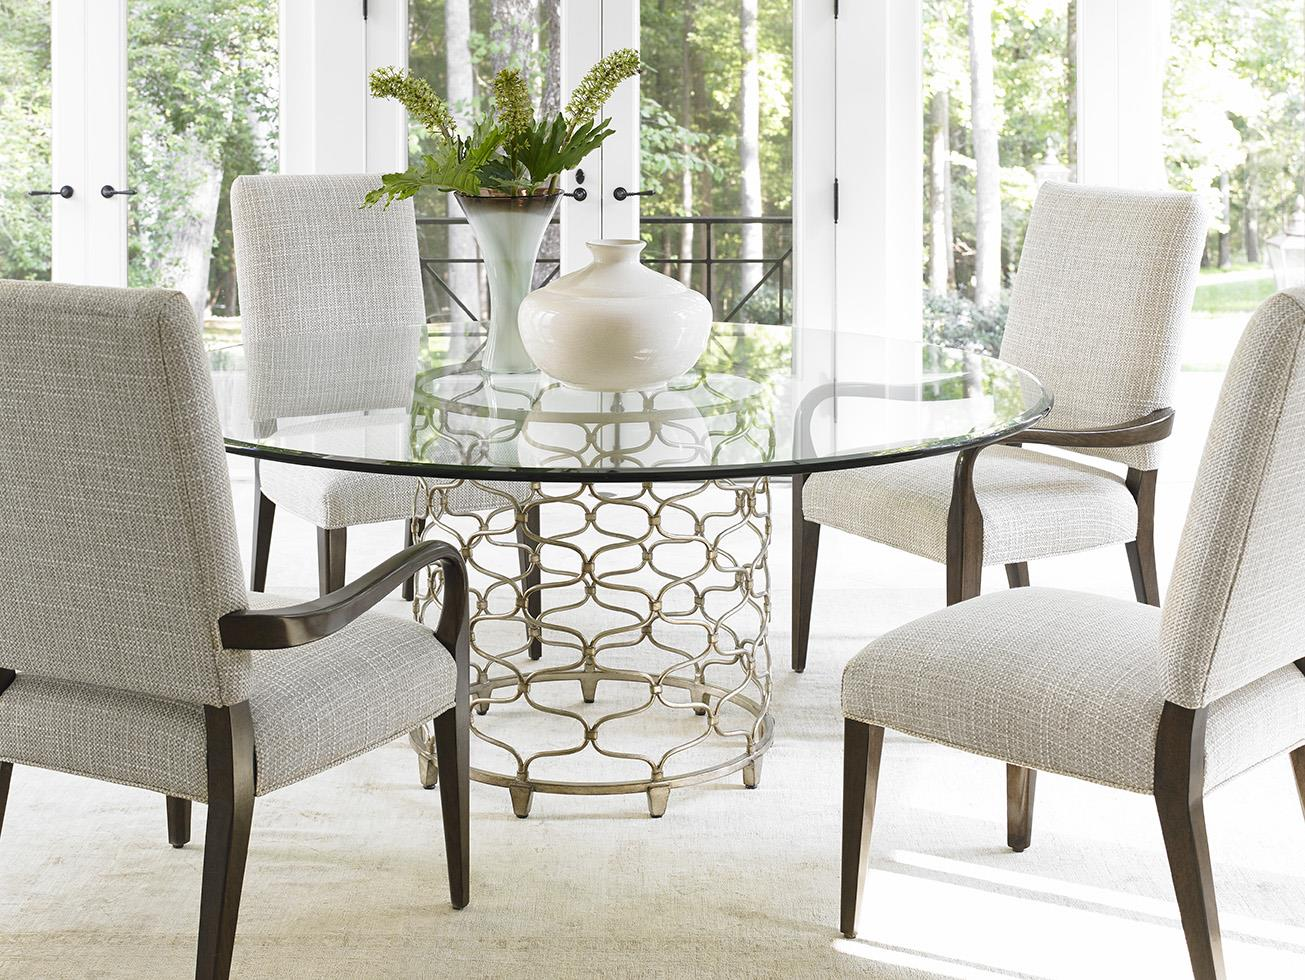 lexington dining chairs yellow club chair laurel canyon five piece set with